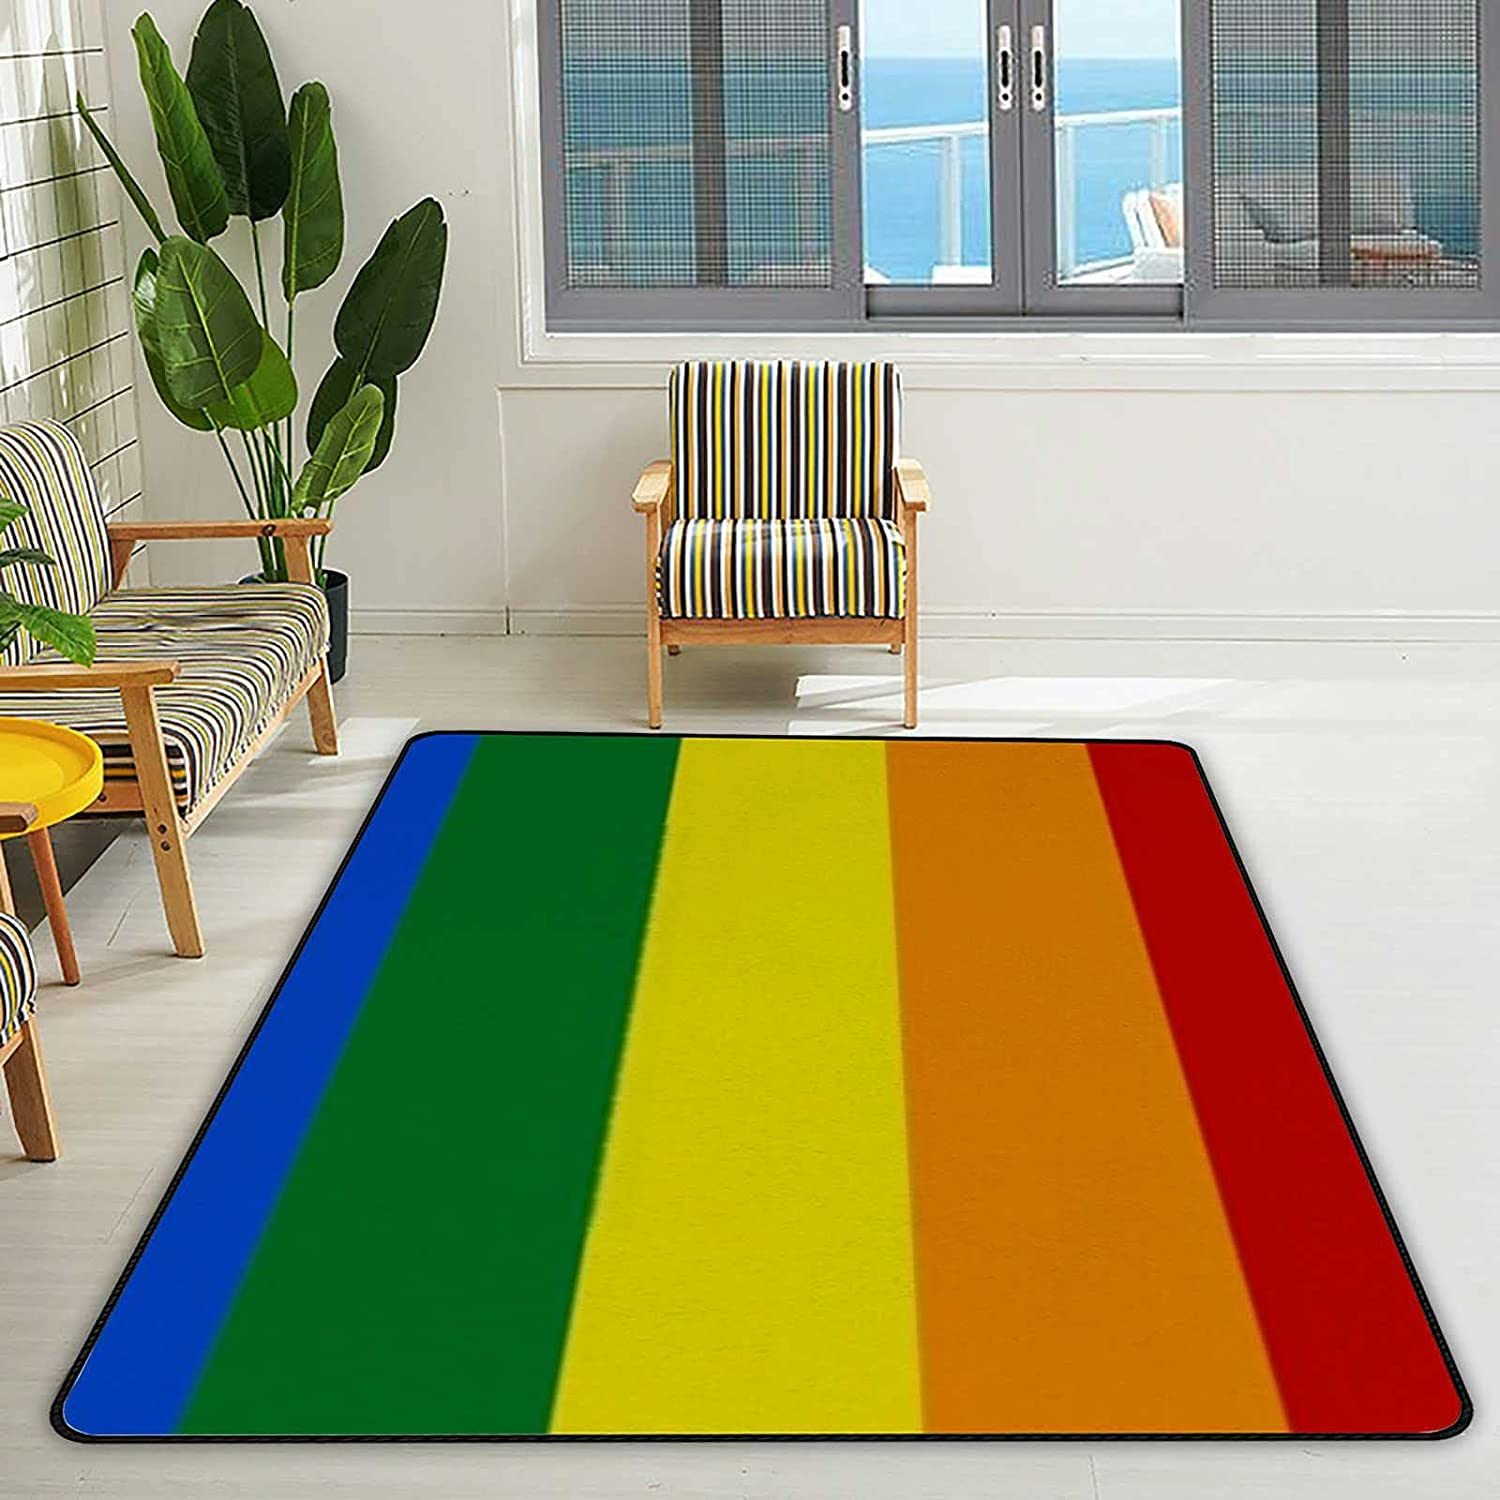 Area Rugs Topics on Indianapolis Mall TV Mat for Living Room Community Rainbow LGBT Symbol Flag